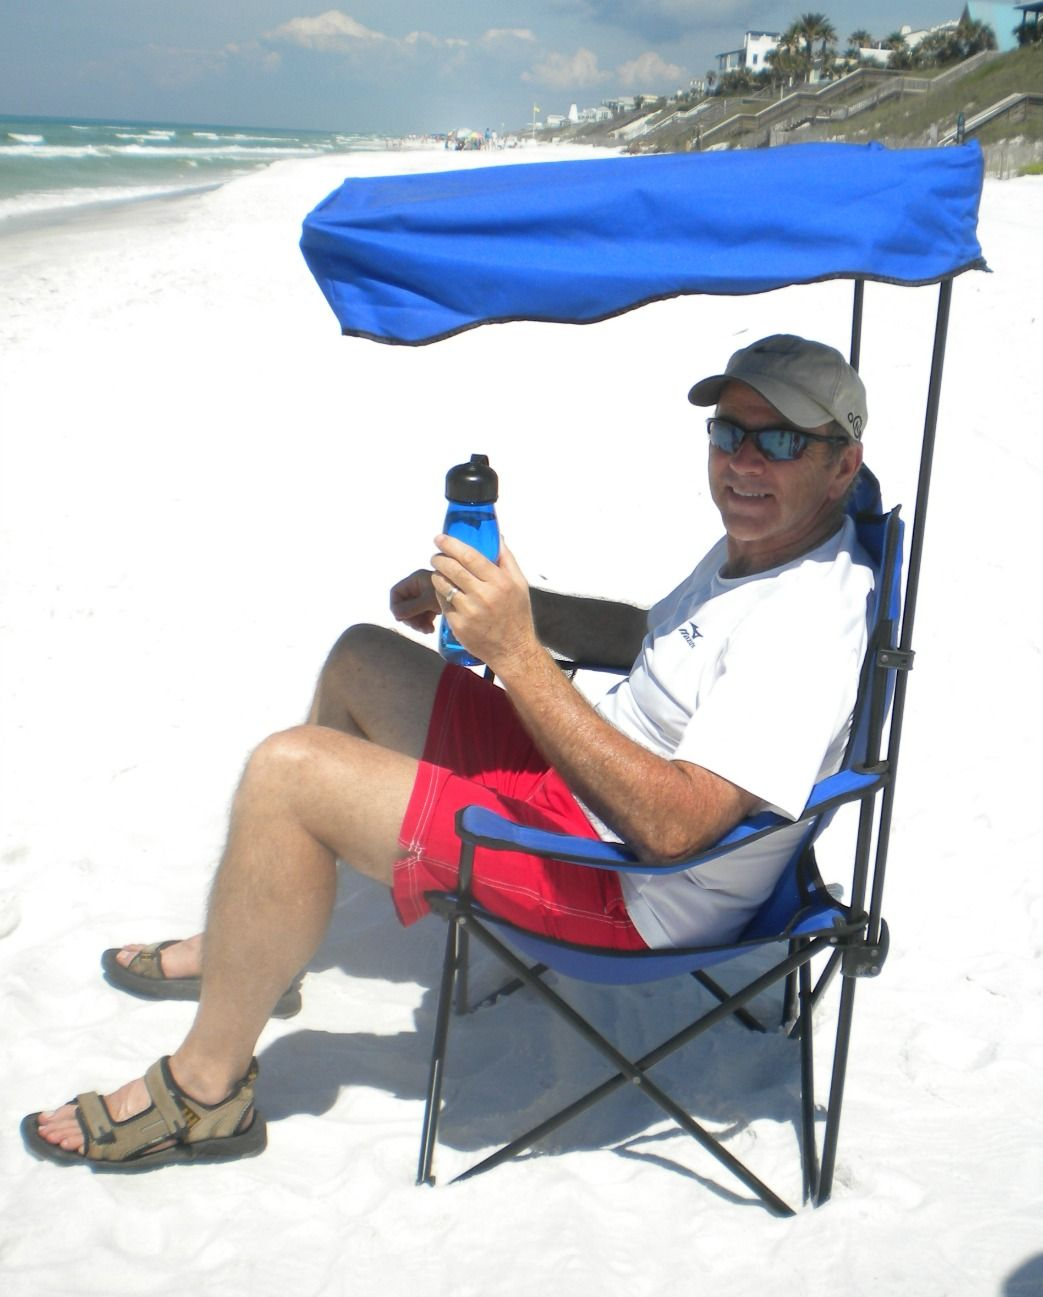 Backpack beach chair with canopy - Find This Pin And More On Aluminum Beach Chairs Reclining Backpack Lightweight Canopy